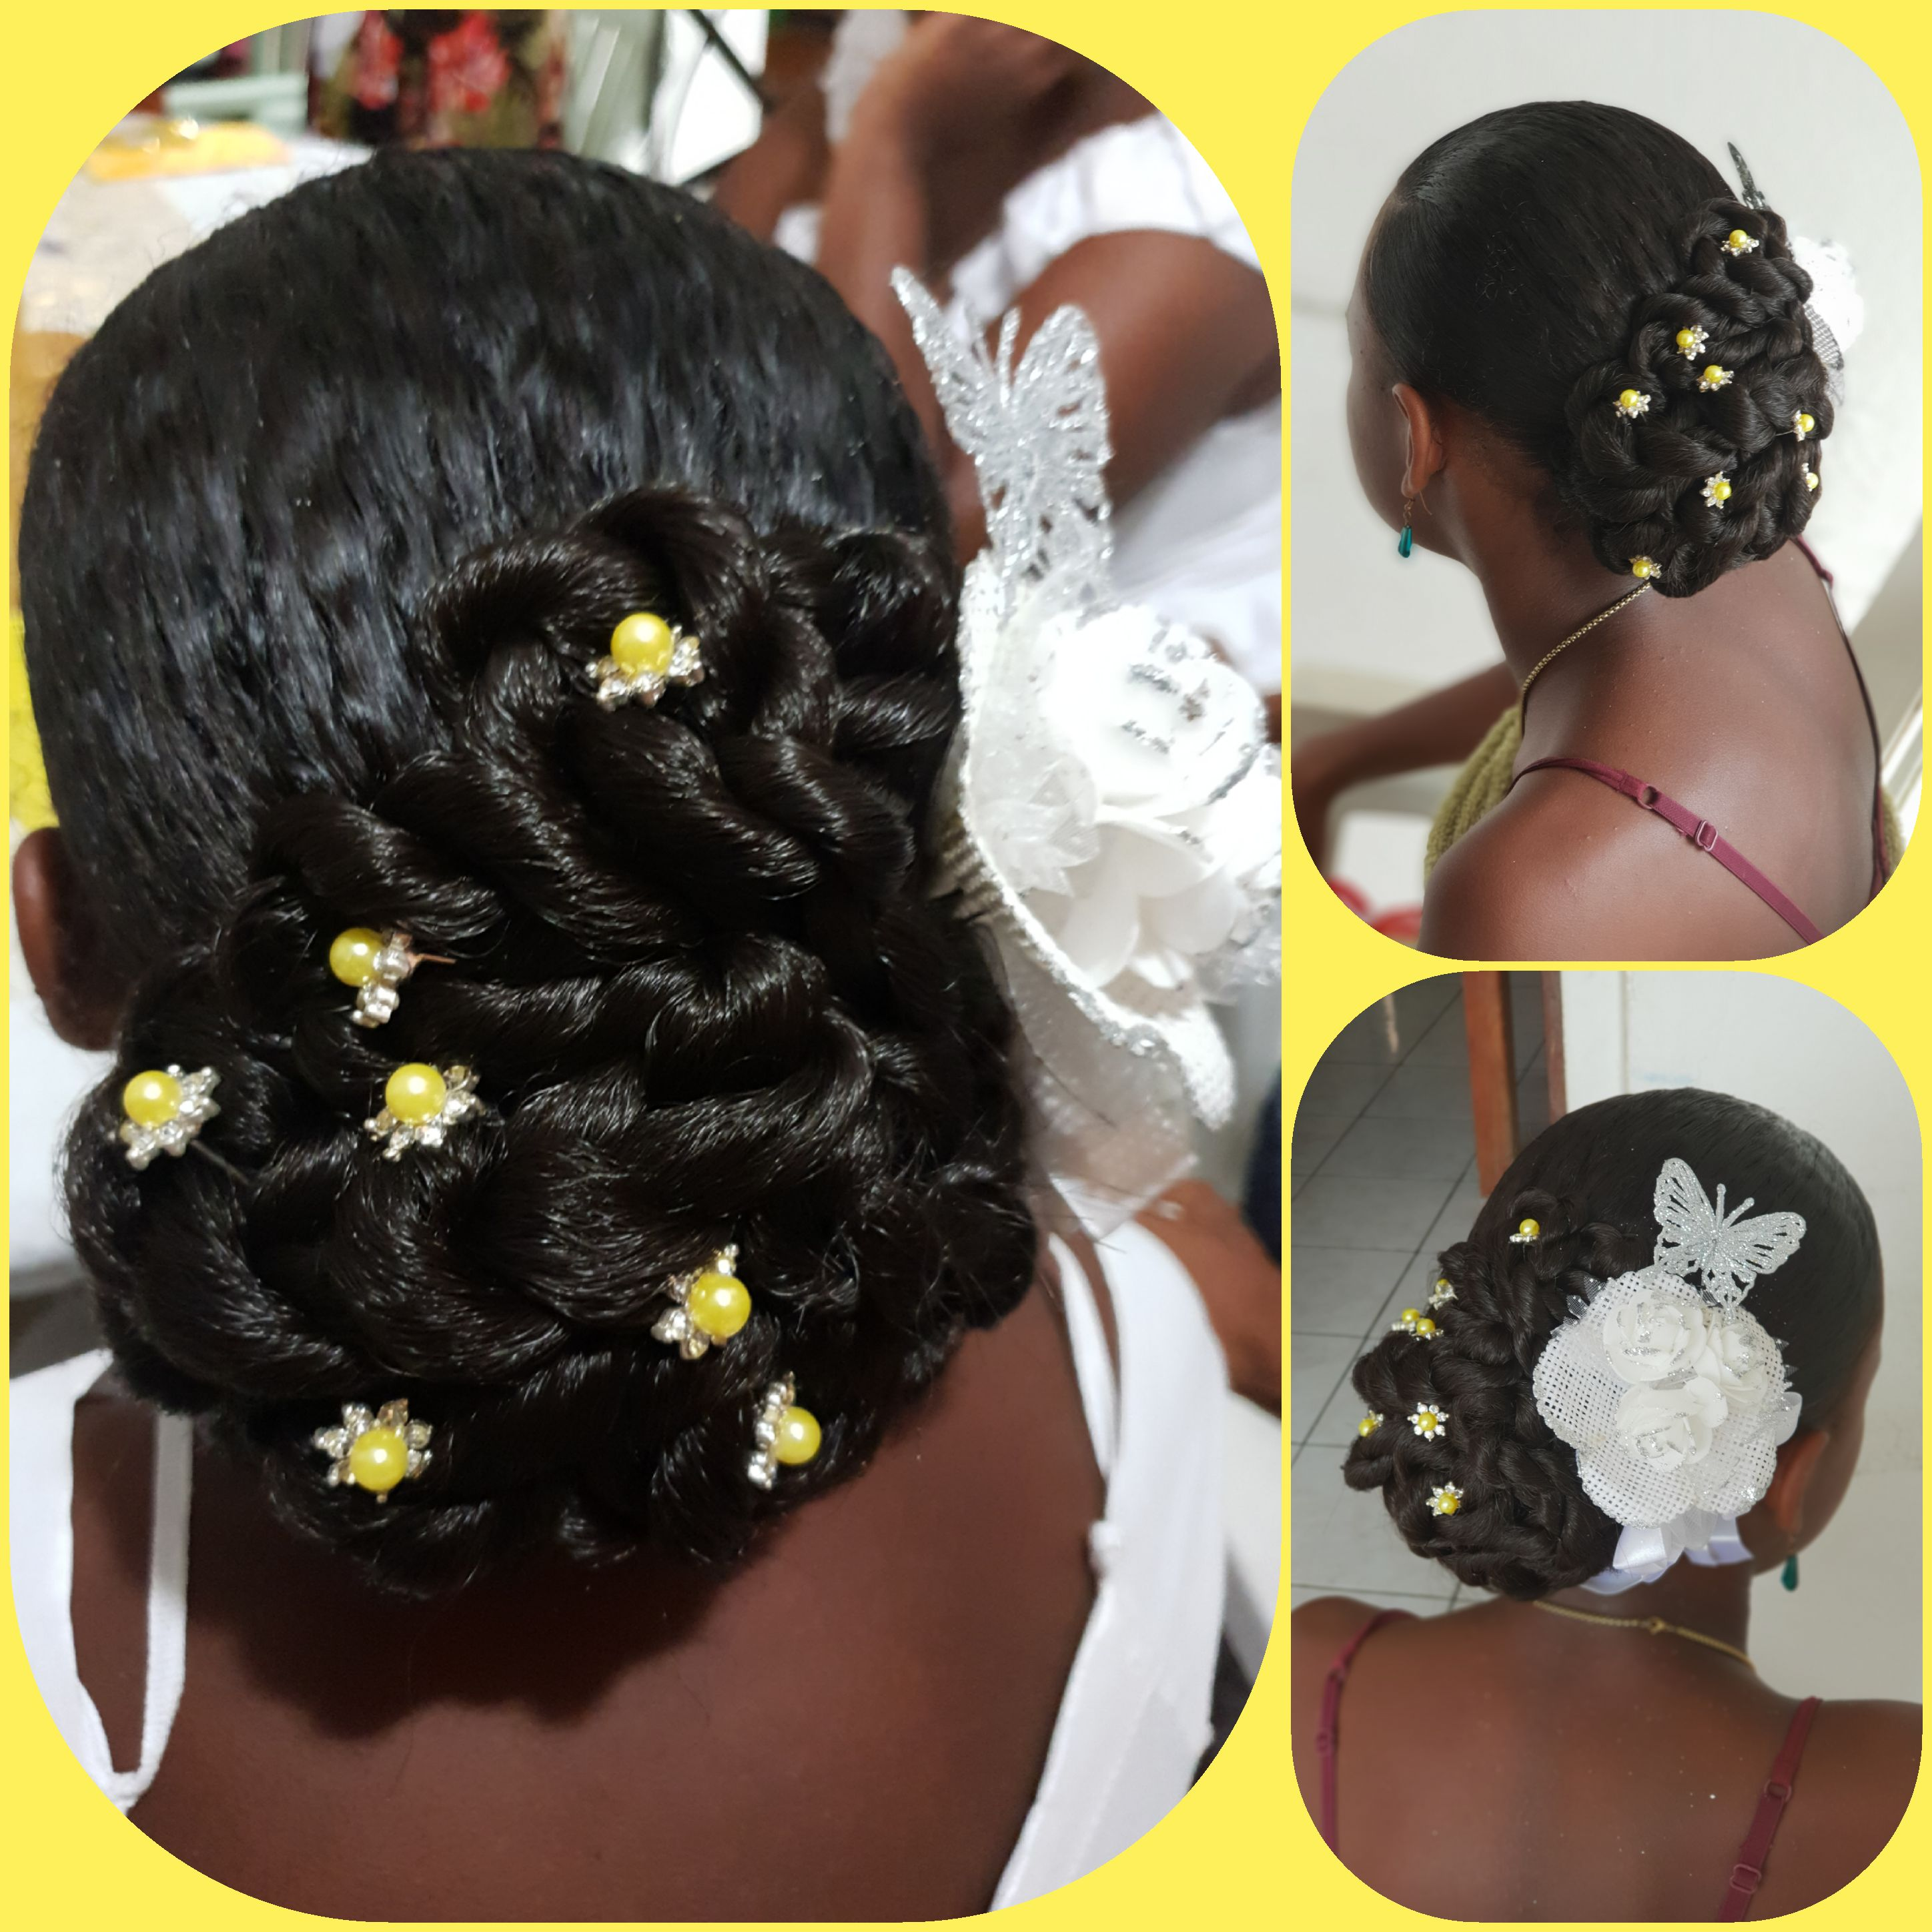 salon de coiffure afro tresse tresses box braids crochet braids vanilles tissages paris 75 77 78 91 92 93 94 95 UTYYASIL